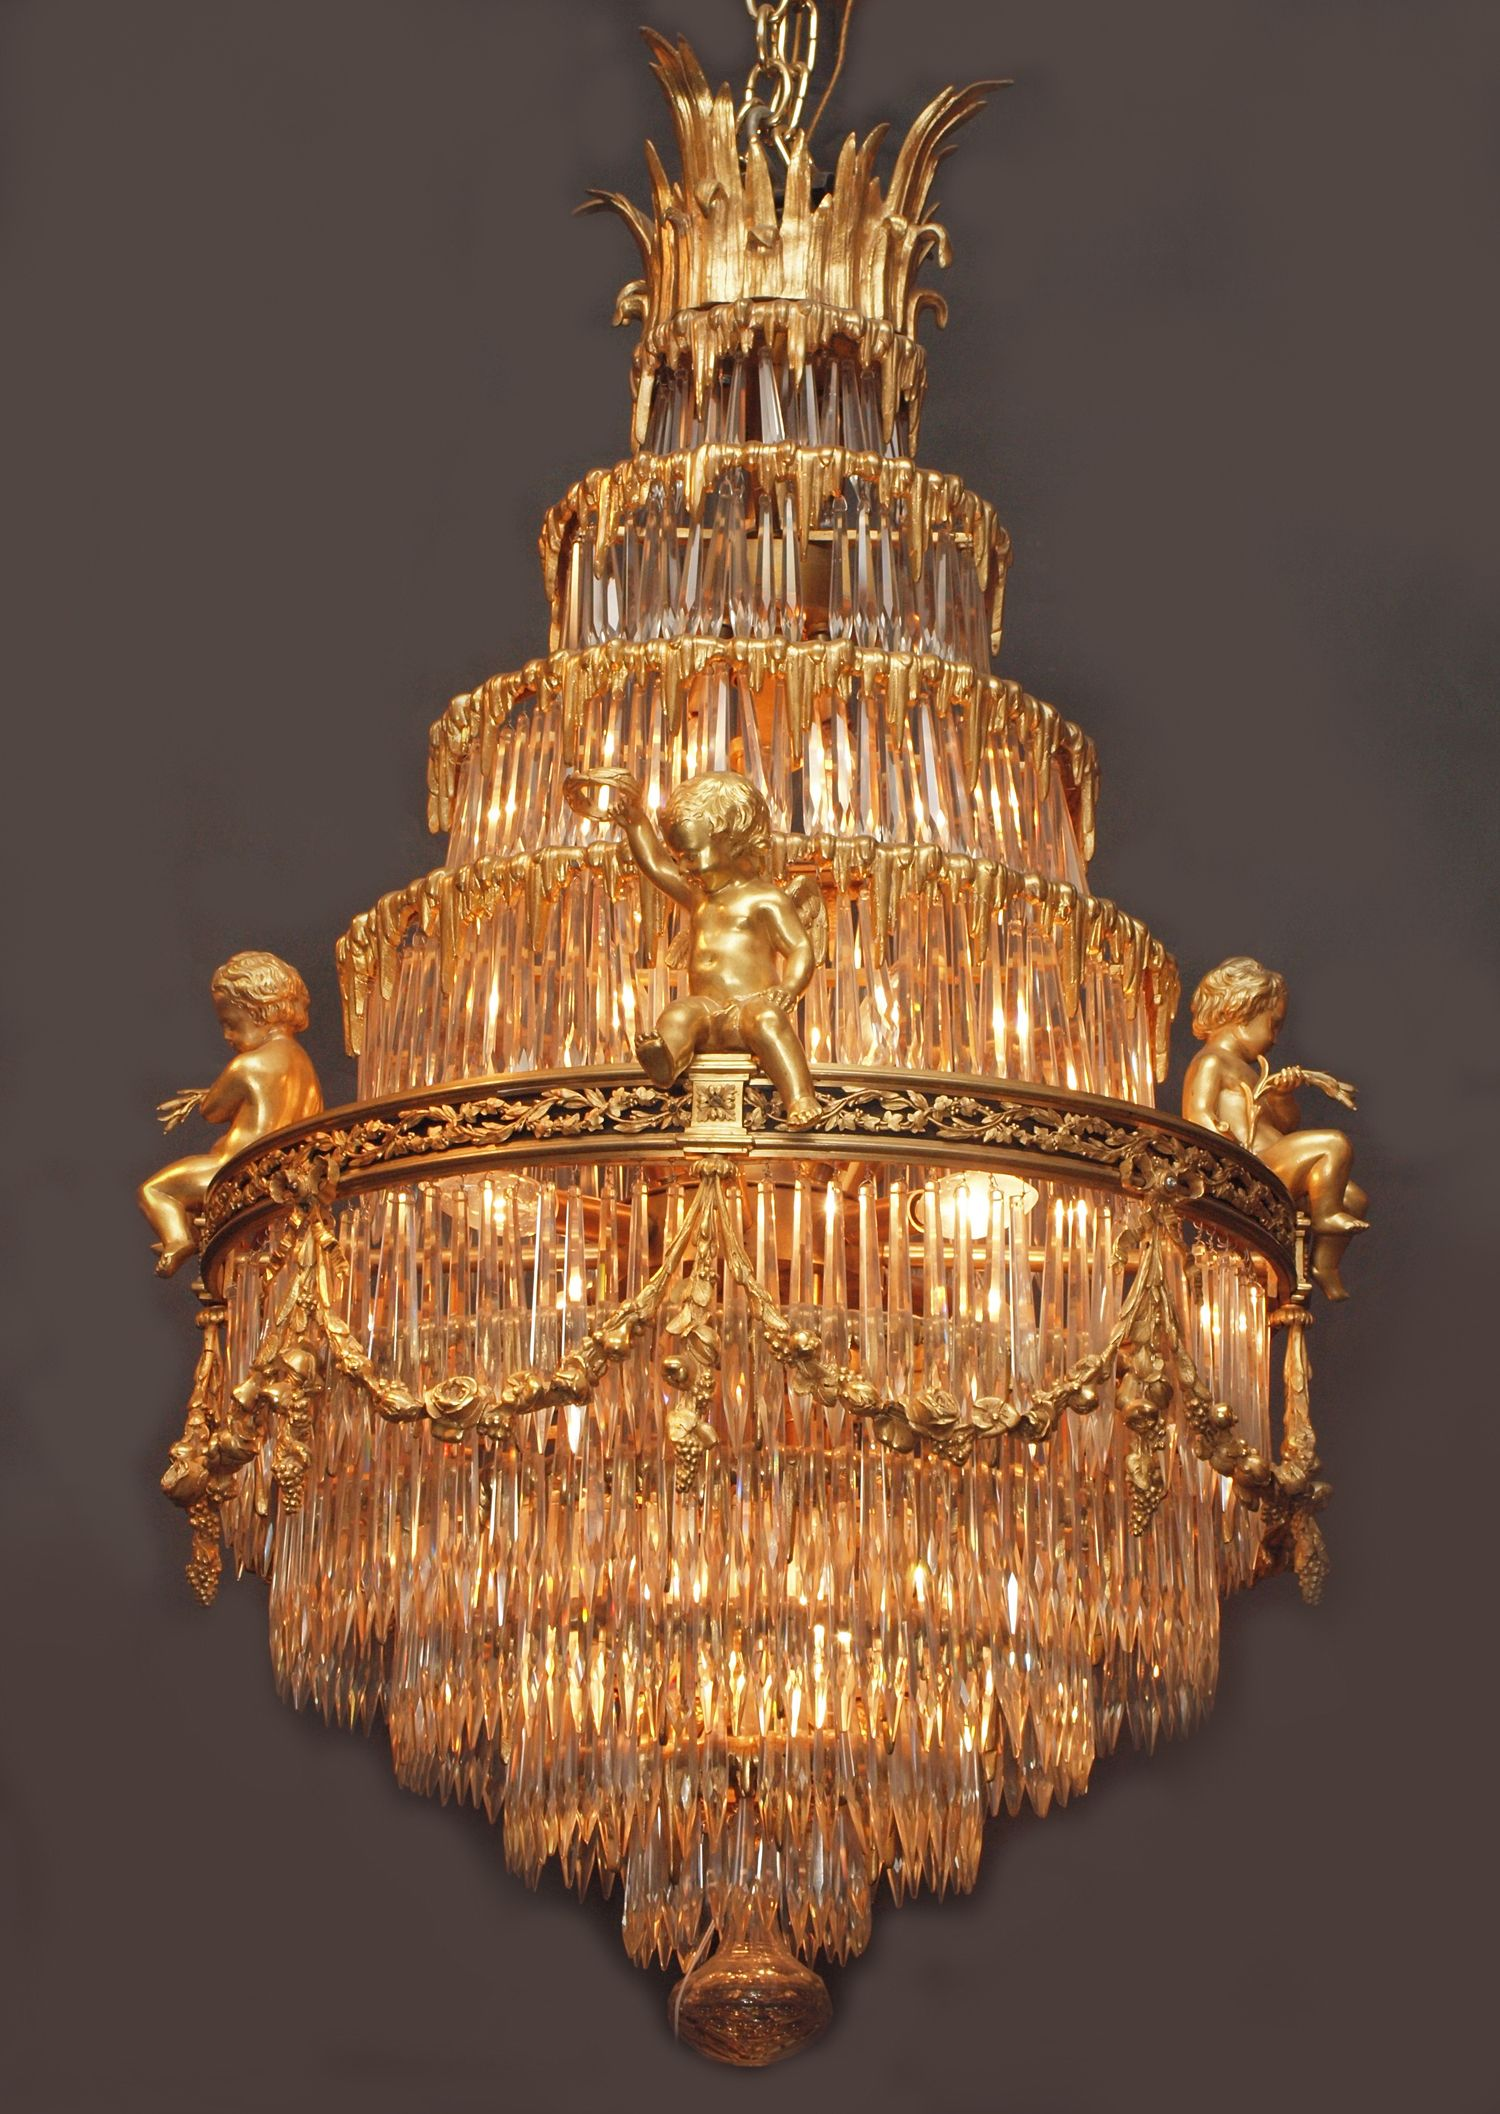 Amazing antique chandelier - Amazing Antique Chandelier Amazing Antiques Pinterest Antique